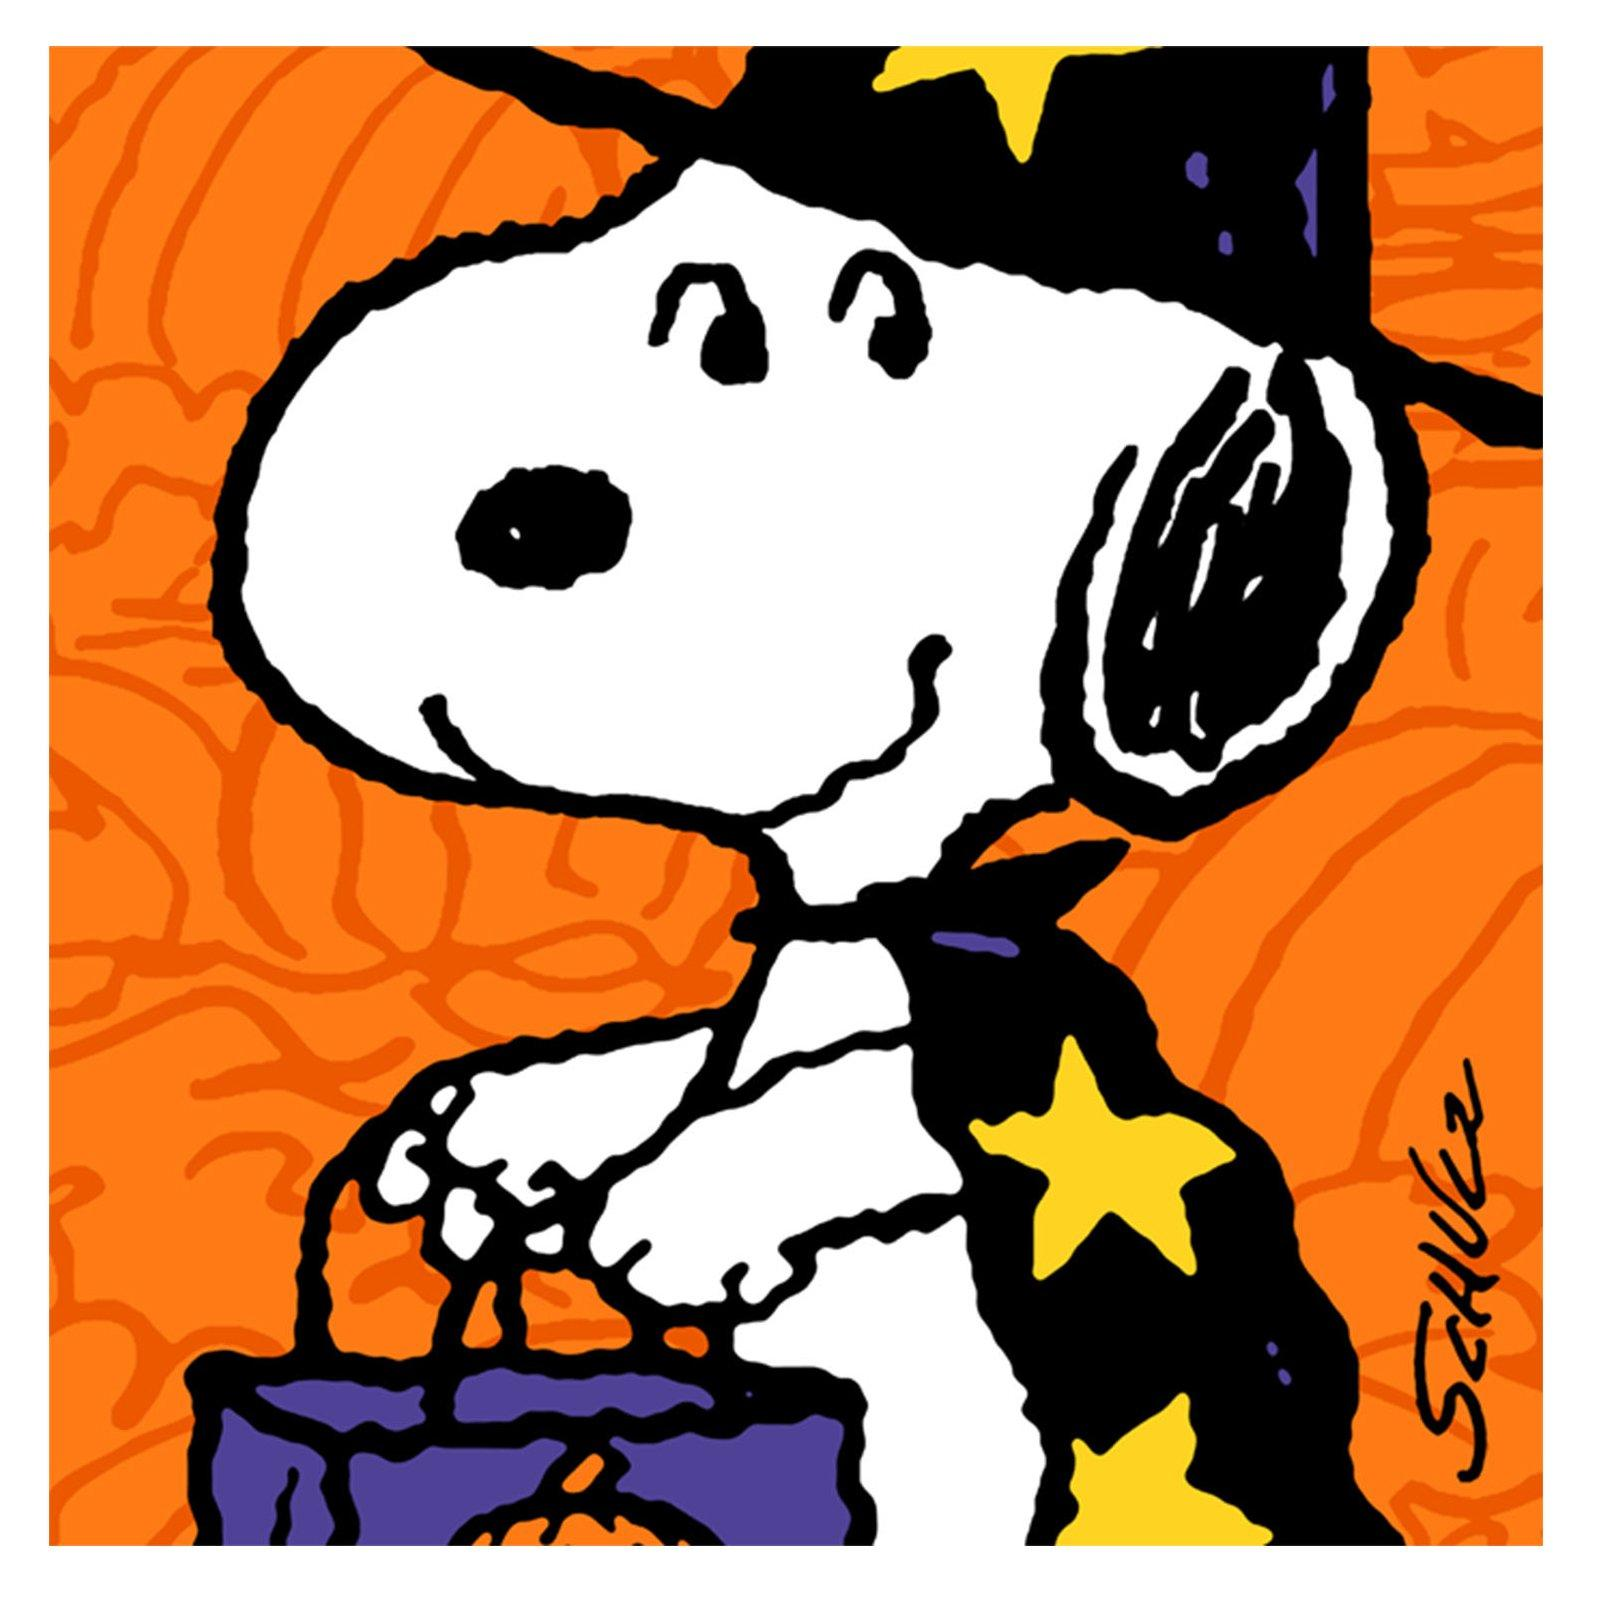 [77+] Snoopy Halloween Wallpaper on WallpaperSafari